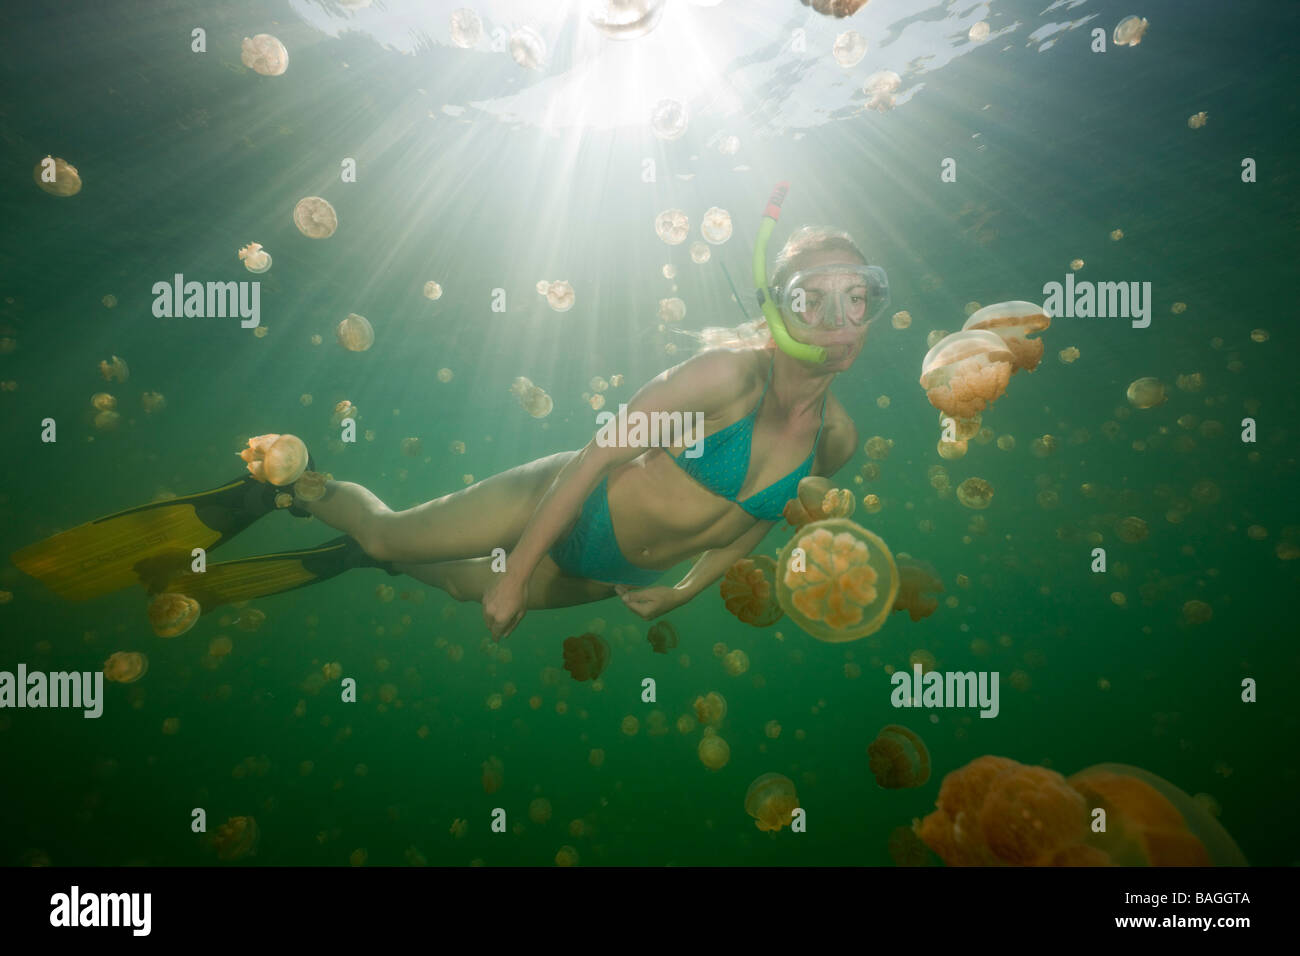 Swimming with harmless Jellyfishes Mastigias papua etpisonii Jellyfish Lake Micronesia Palau - Stock Image